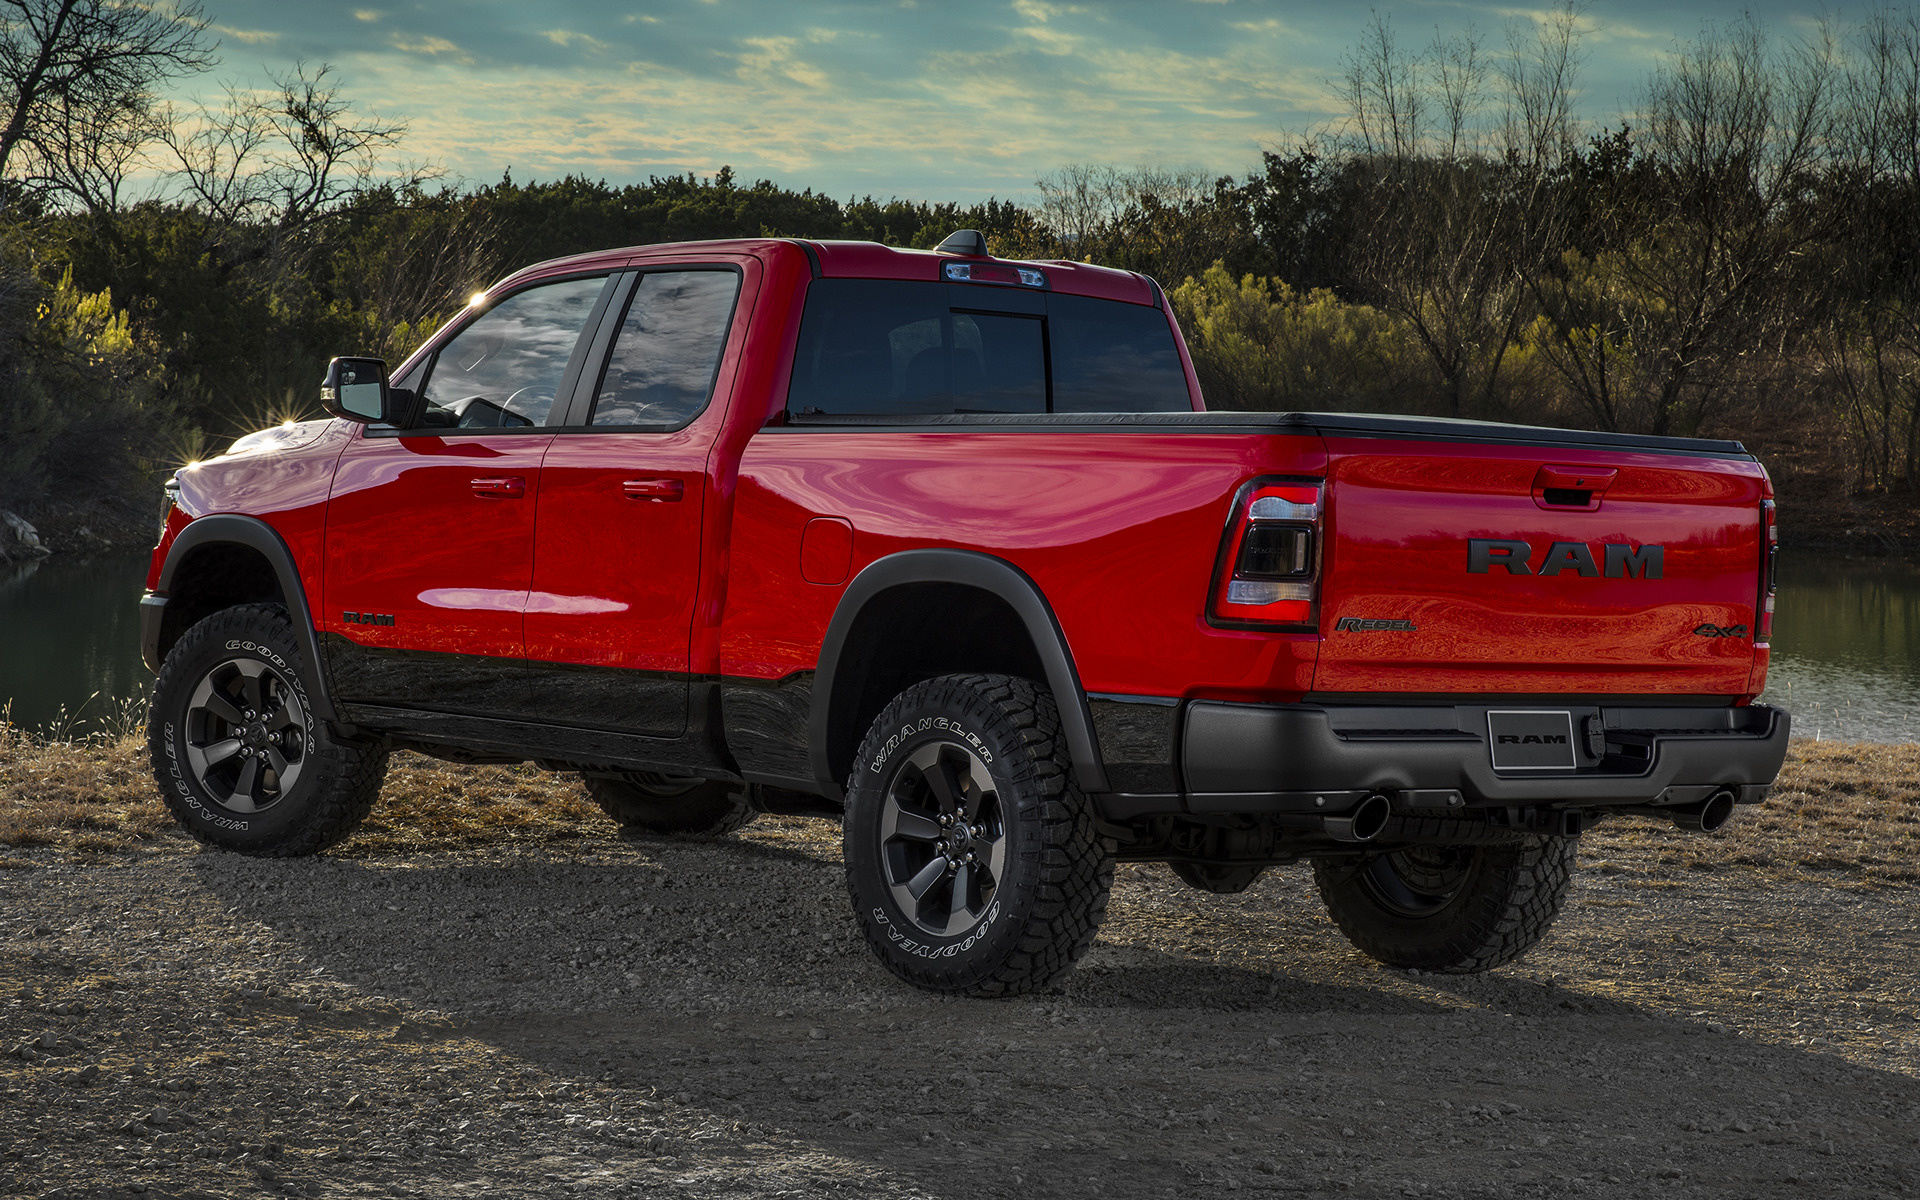 2019 Ram 1500 Rebel Quad Cab Wallpapers And Hd Images